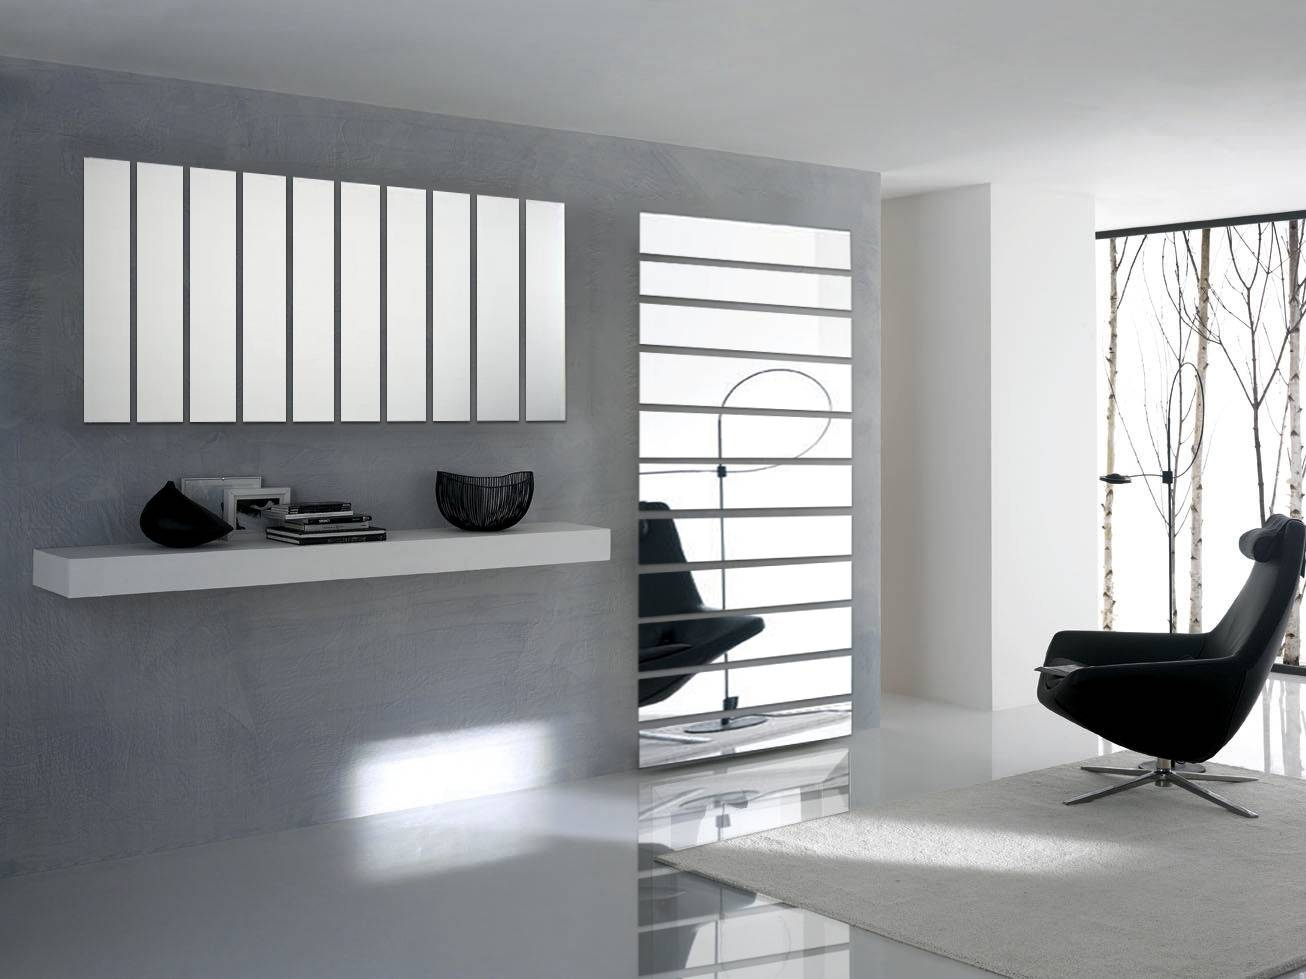 Bedroom : Trendy Images Of In Photography Ideas Modern Mirror Wall Within Most Popular Mirrors Modern Wall Art (View 5 of 20)